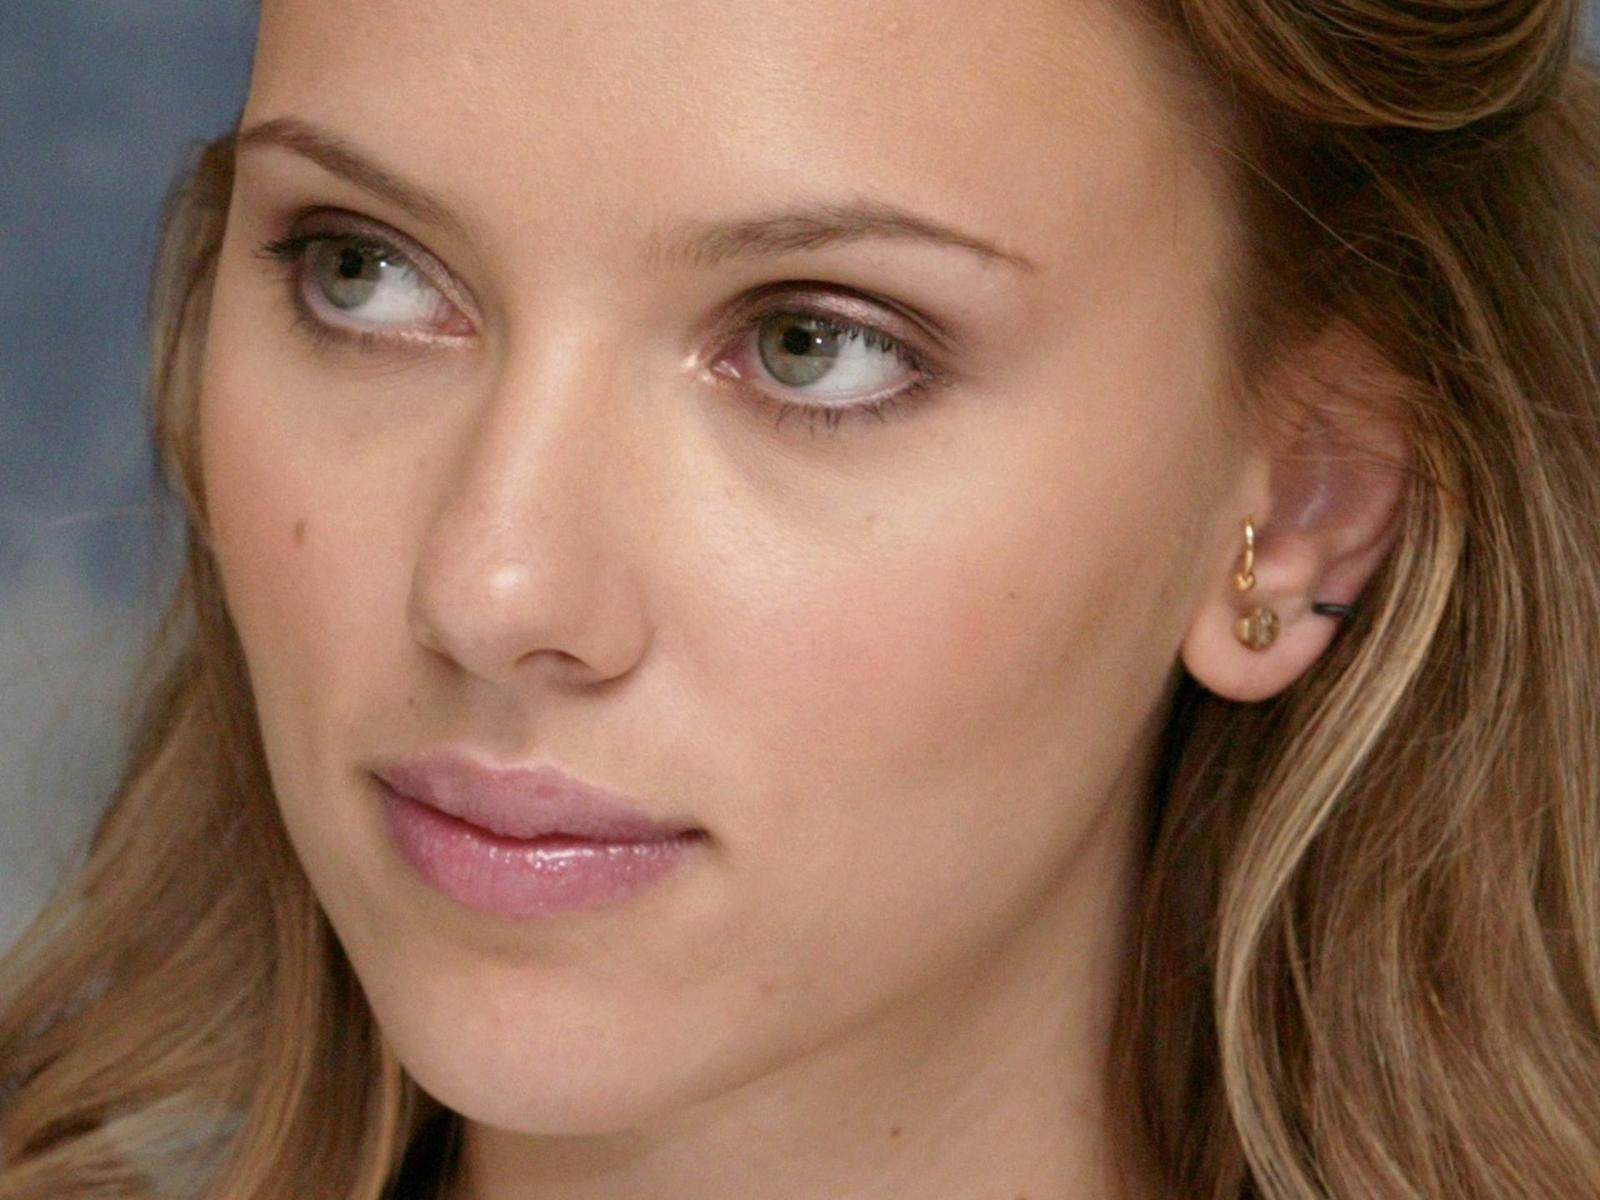 Scarlett Johansson Wallpaper on Scarlett Johansson Hd Wallpaper   Celebrity   Actress   541069